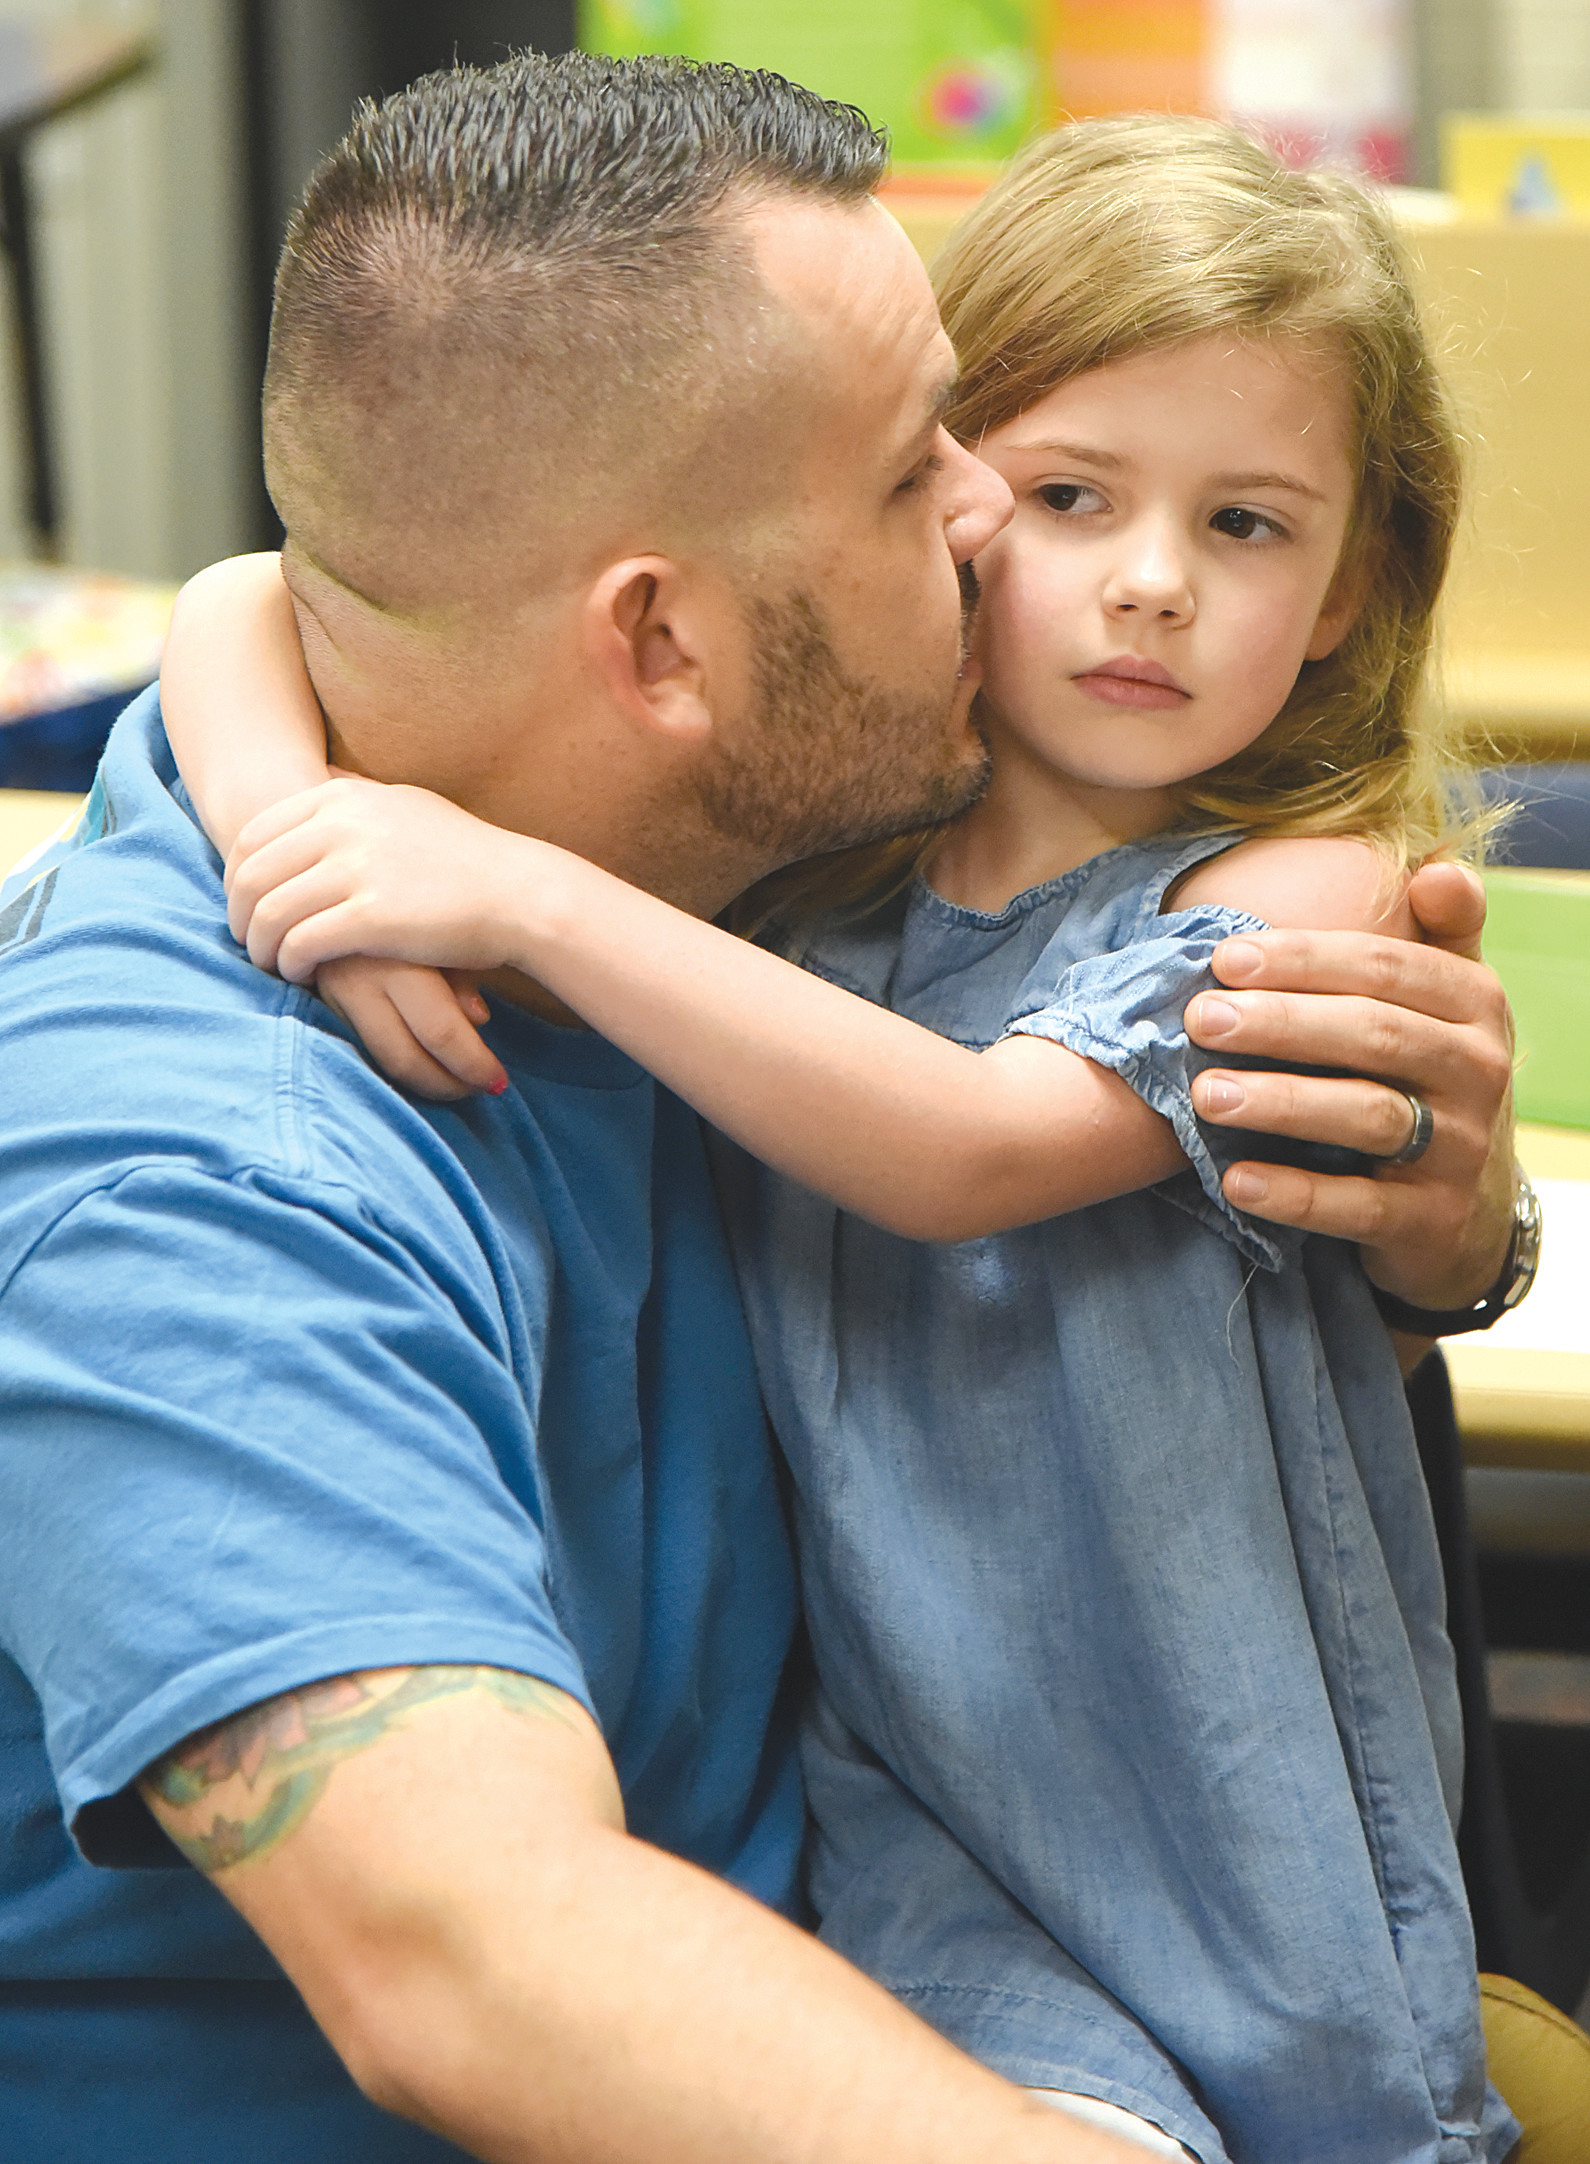 U.S. Air Force Master Sgt. Jeff Zell gives his daughter, Eva, 5, a kiss before leaving her in a kindergarten class on the first day of school at Alice Drive Elementary School.